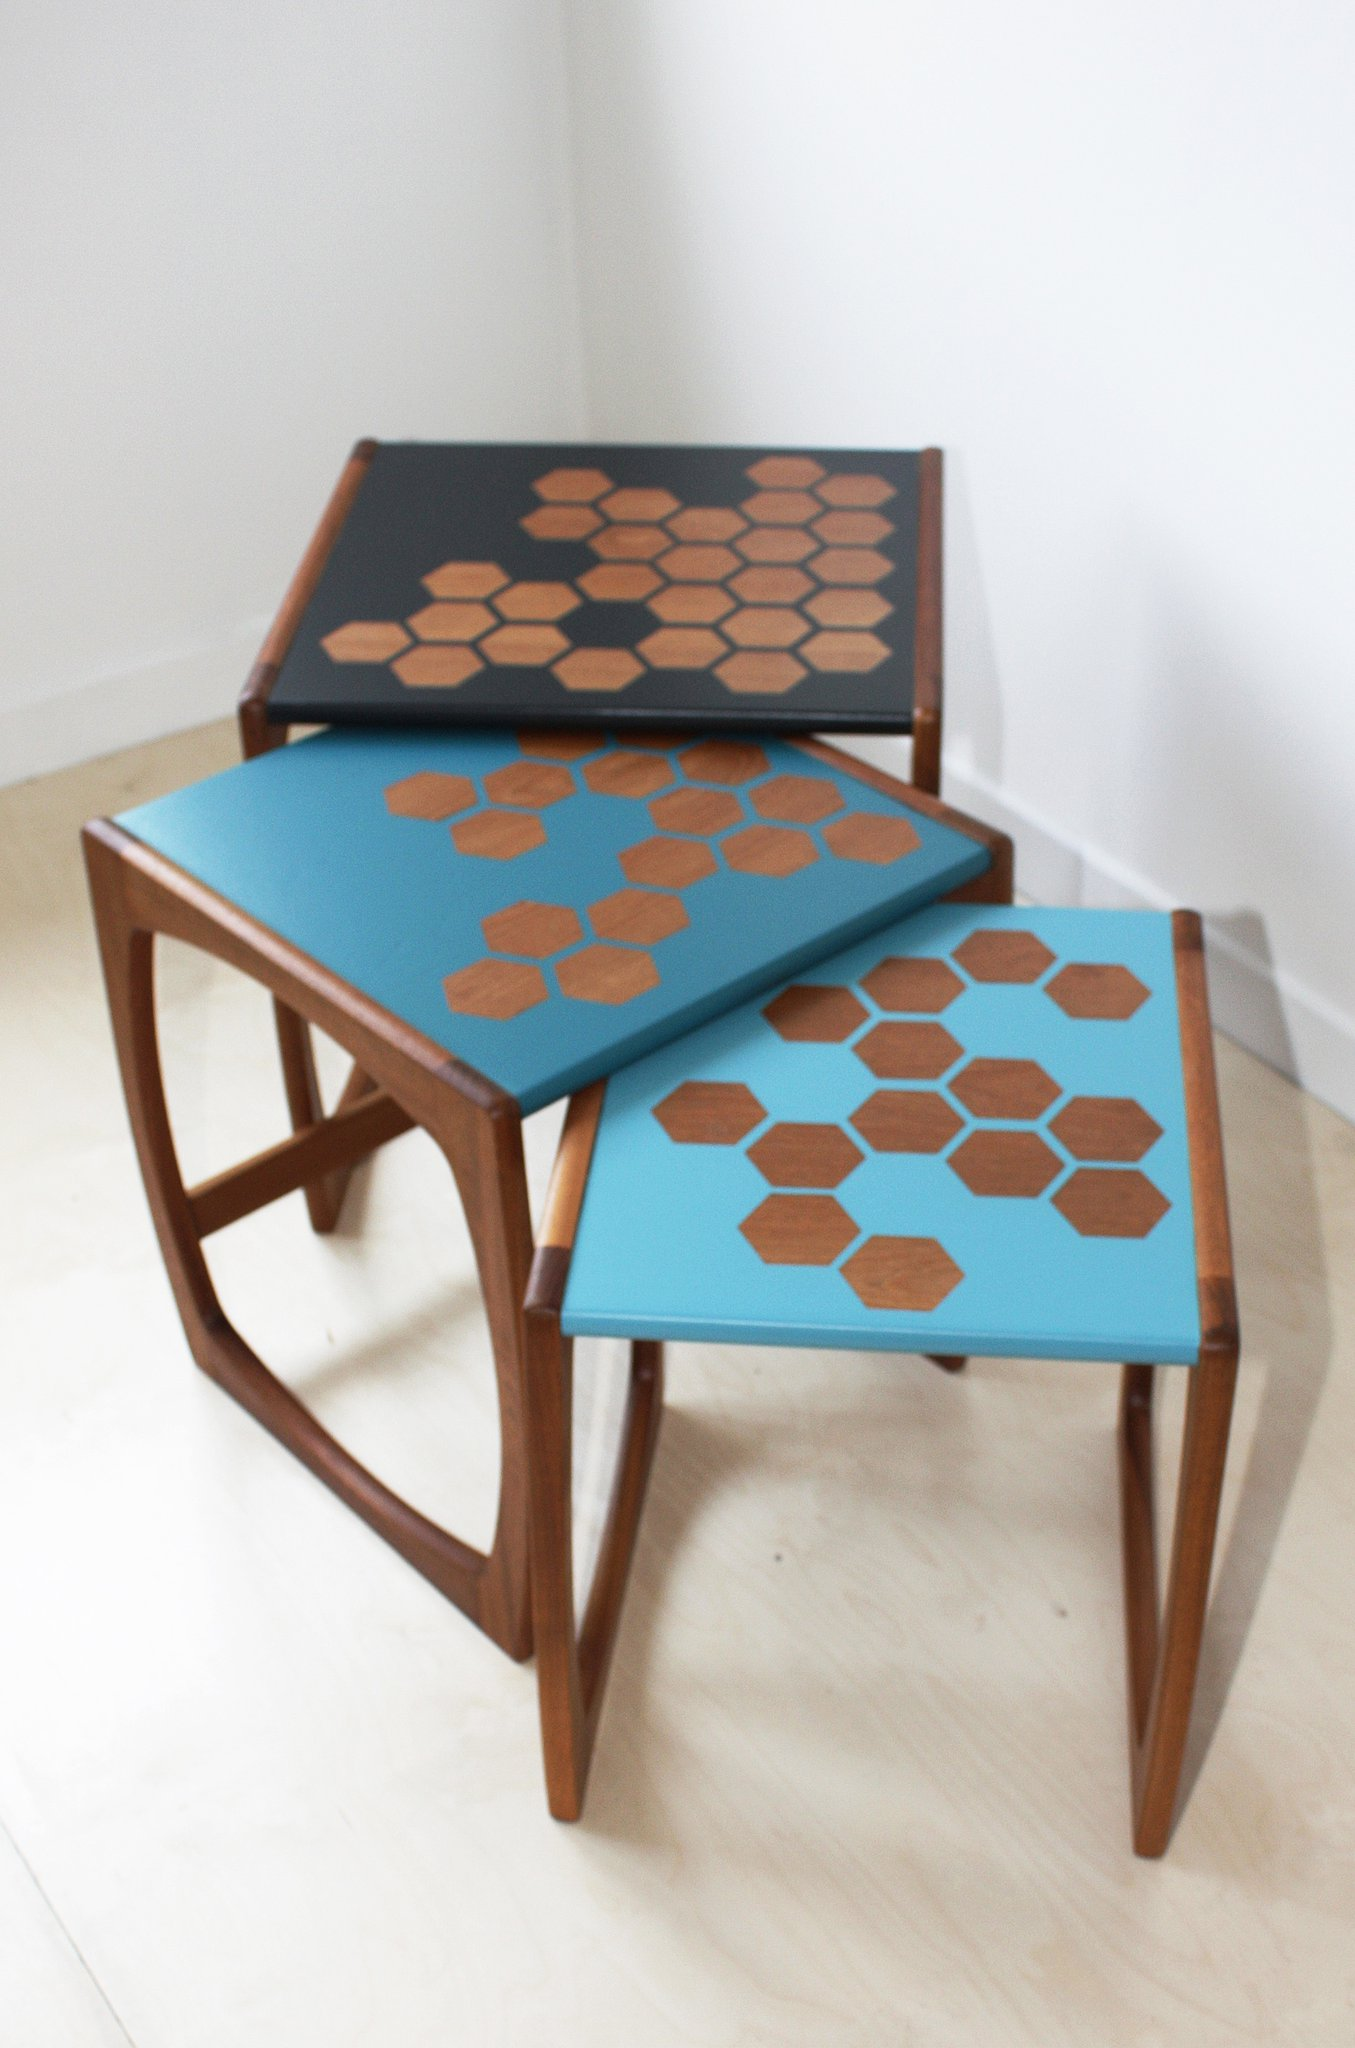 The House of Upcycling: Roc Studio Mid Century Table Nest with Hexagonal Surface Design